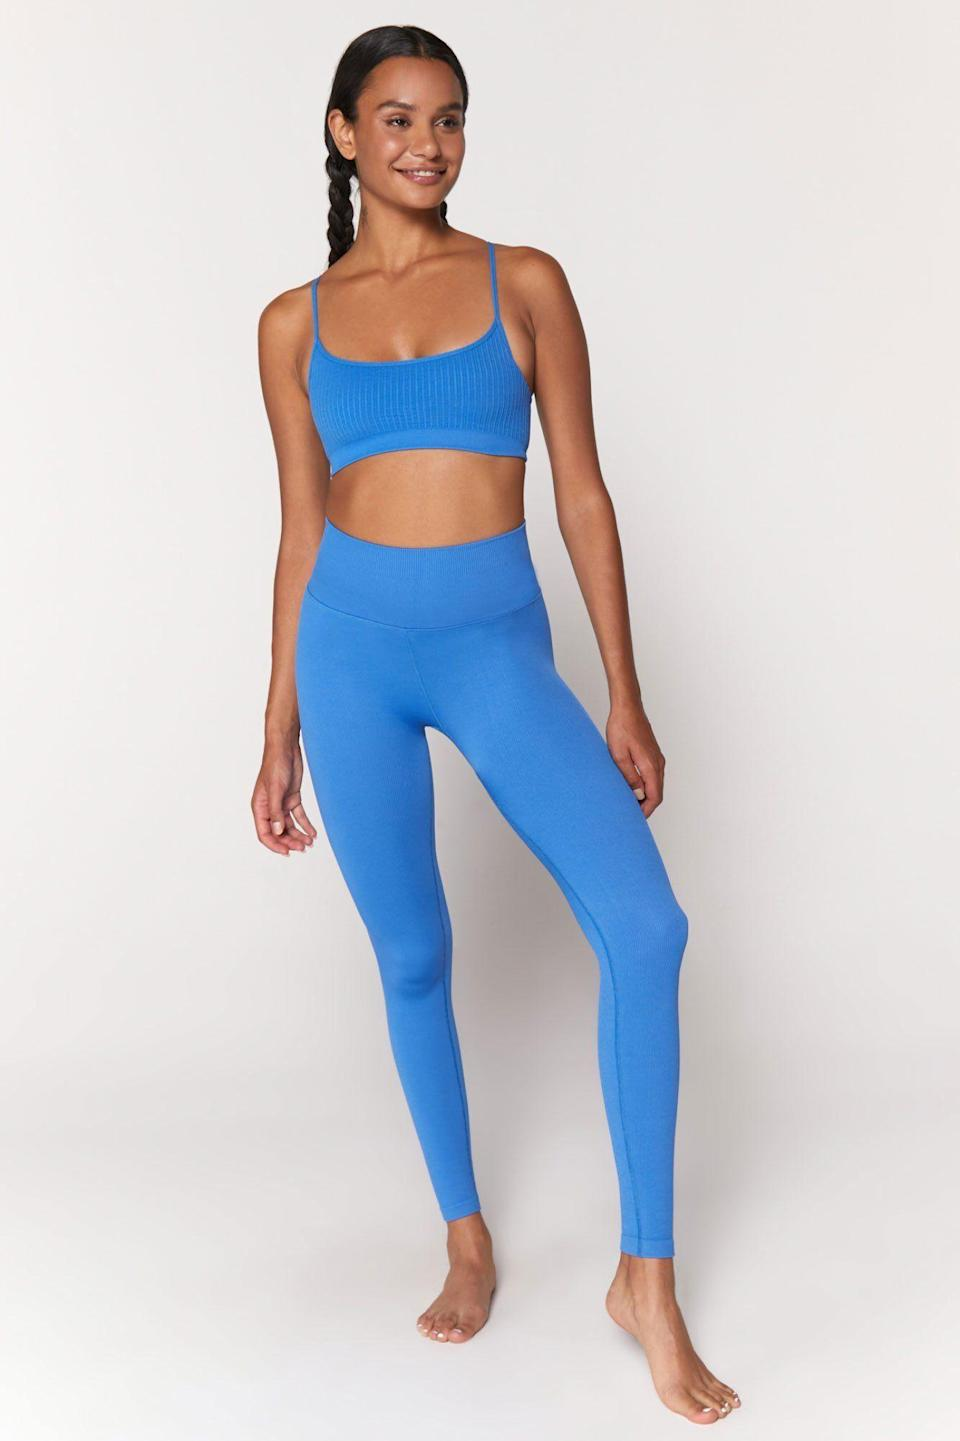 """<p>spiritualgangster.com</p><p><strong>$9800.00</strong></p><p><a href=""""https://spiritualgangster.com/products/sp13677008-blp-love-sculpt-legging"""" rel=""""nofollow noopener"""" target=""""_blank"""" data-ylk=""""slk:Shop Now"""" class=""""link rapid-noclick-resp"""">Shop Now</a></p><p>""""I'm a sets girl, so I want to shout out Spiritual Gangster here again,"""" says Chrust. """"Their leggings are awesomely high-waisted, which feels good to flow in for me."""" This pair feels like butter and is totally seamless, so you'll feel cozy and ready to move.</p>"""